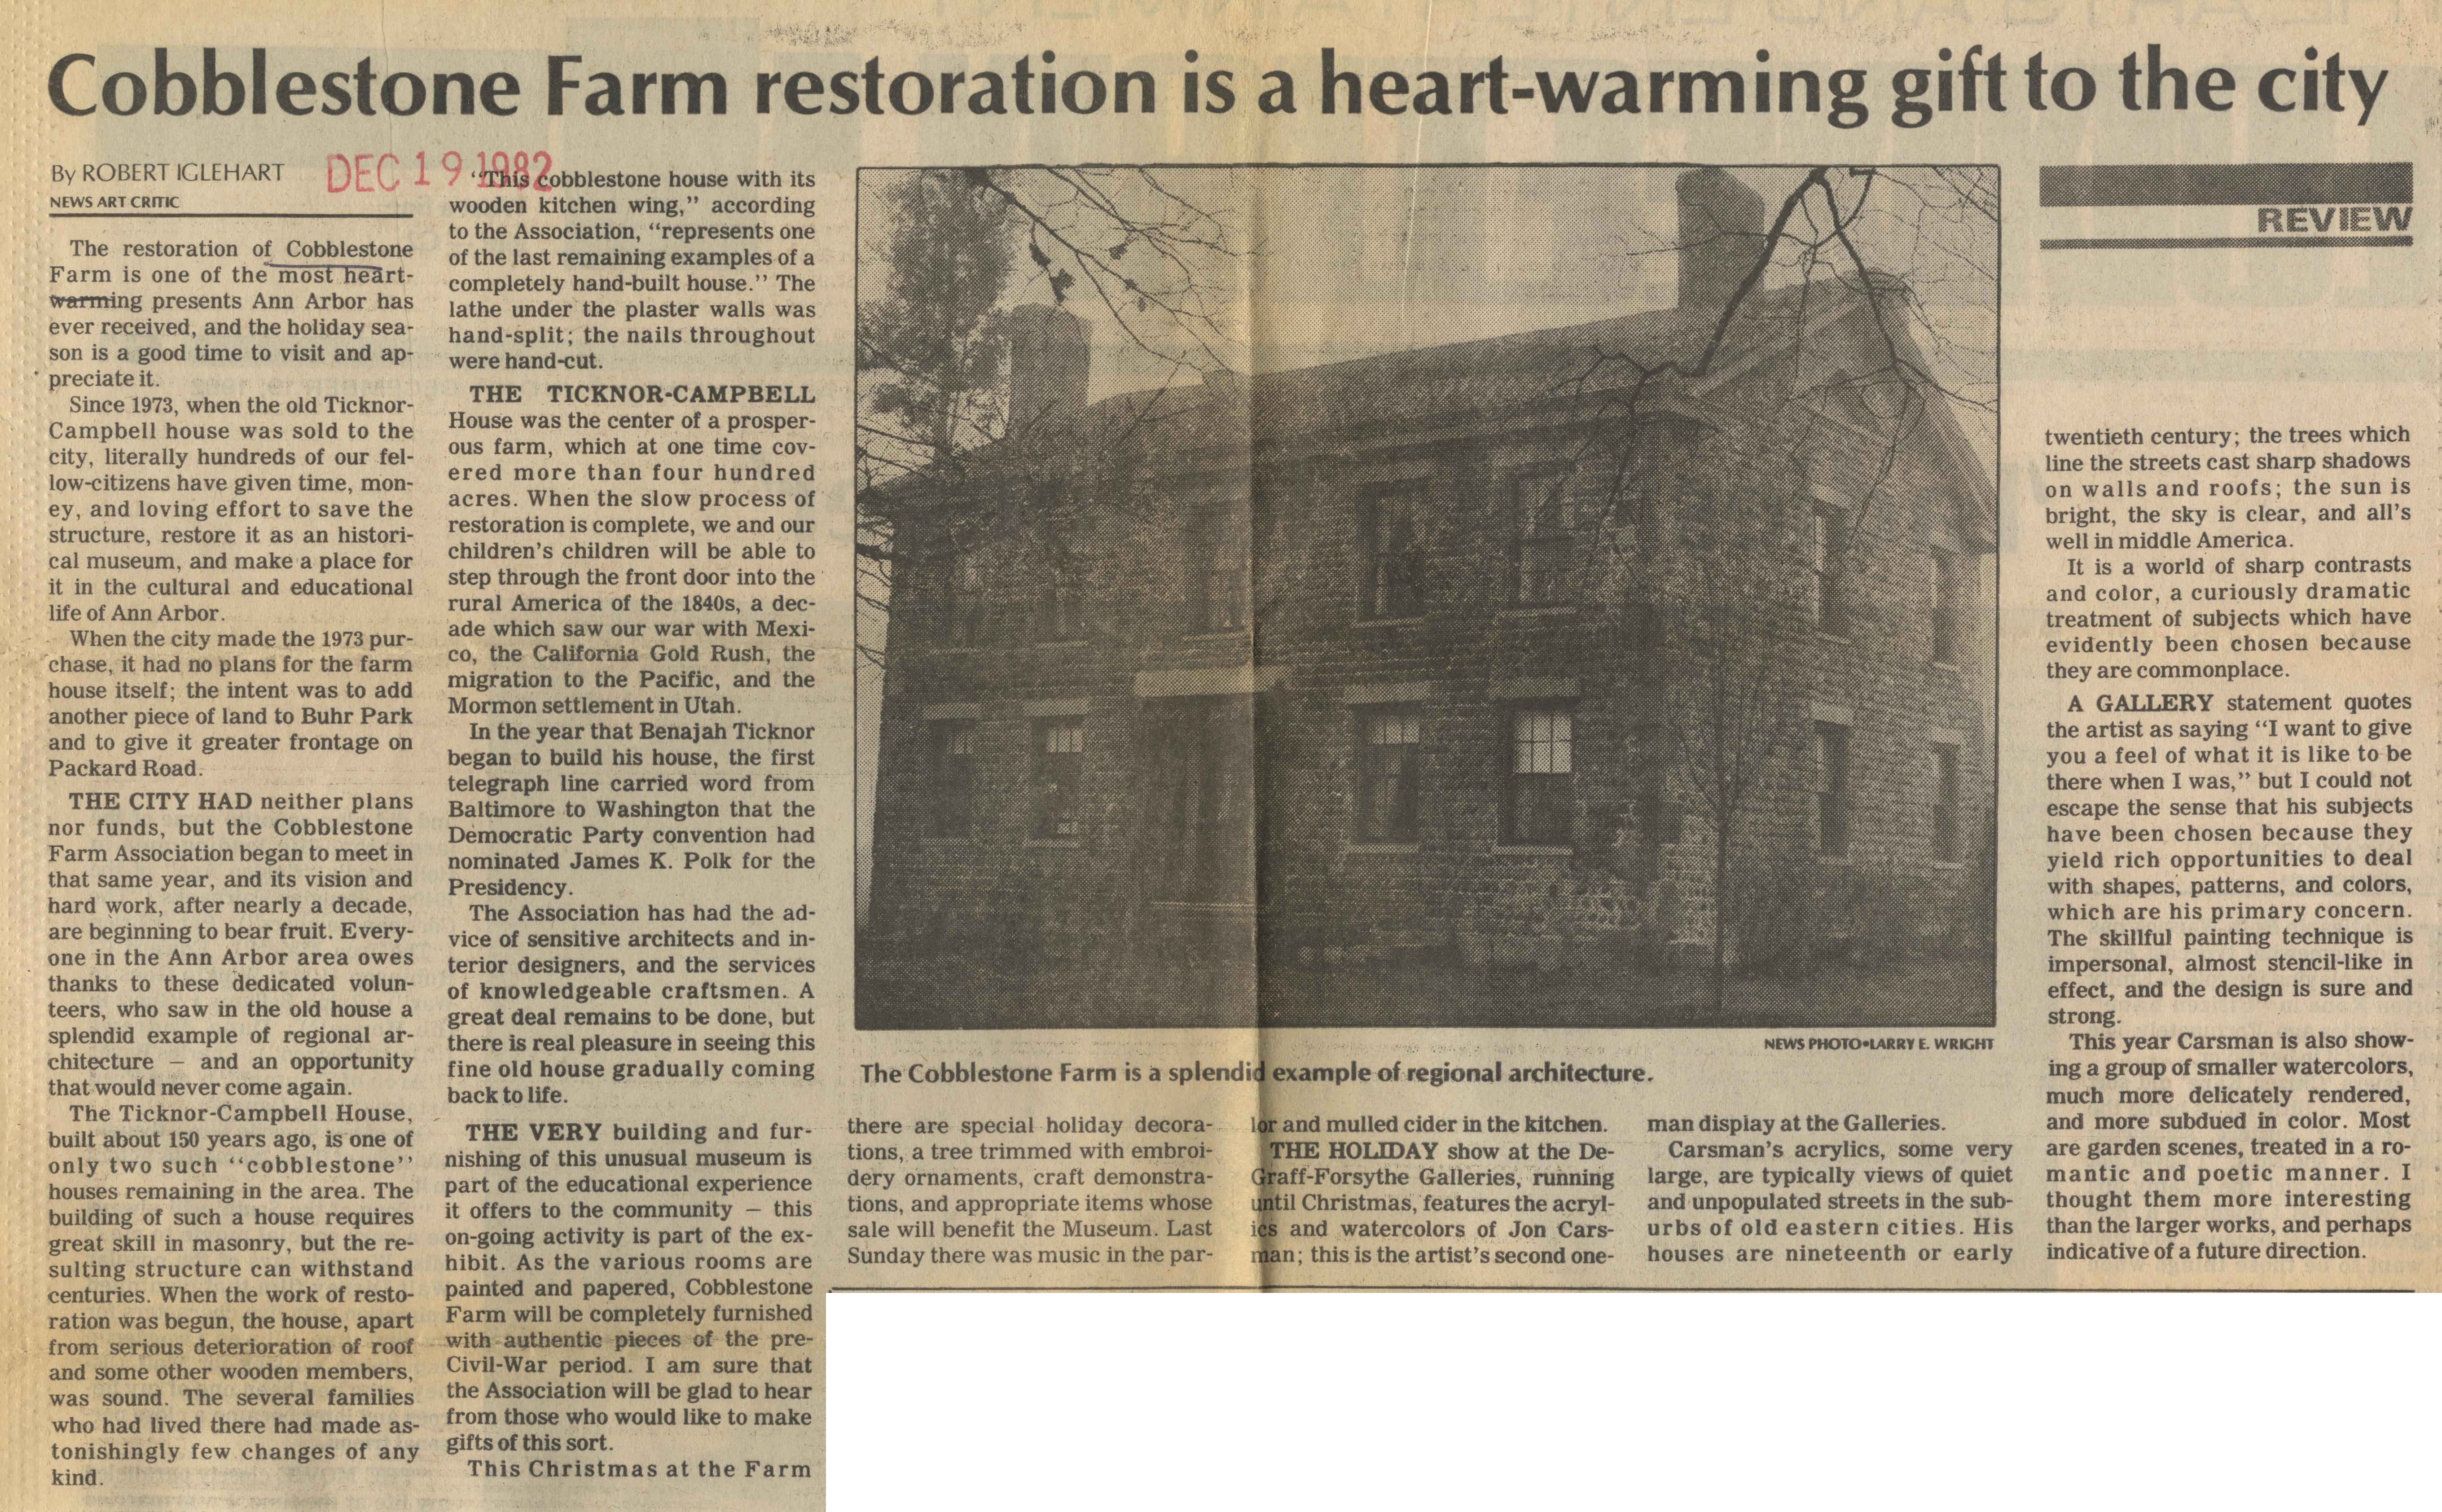 Cobblestone Farm Restoration Is A Heart-Warming Gift To The City image